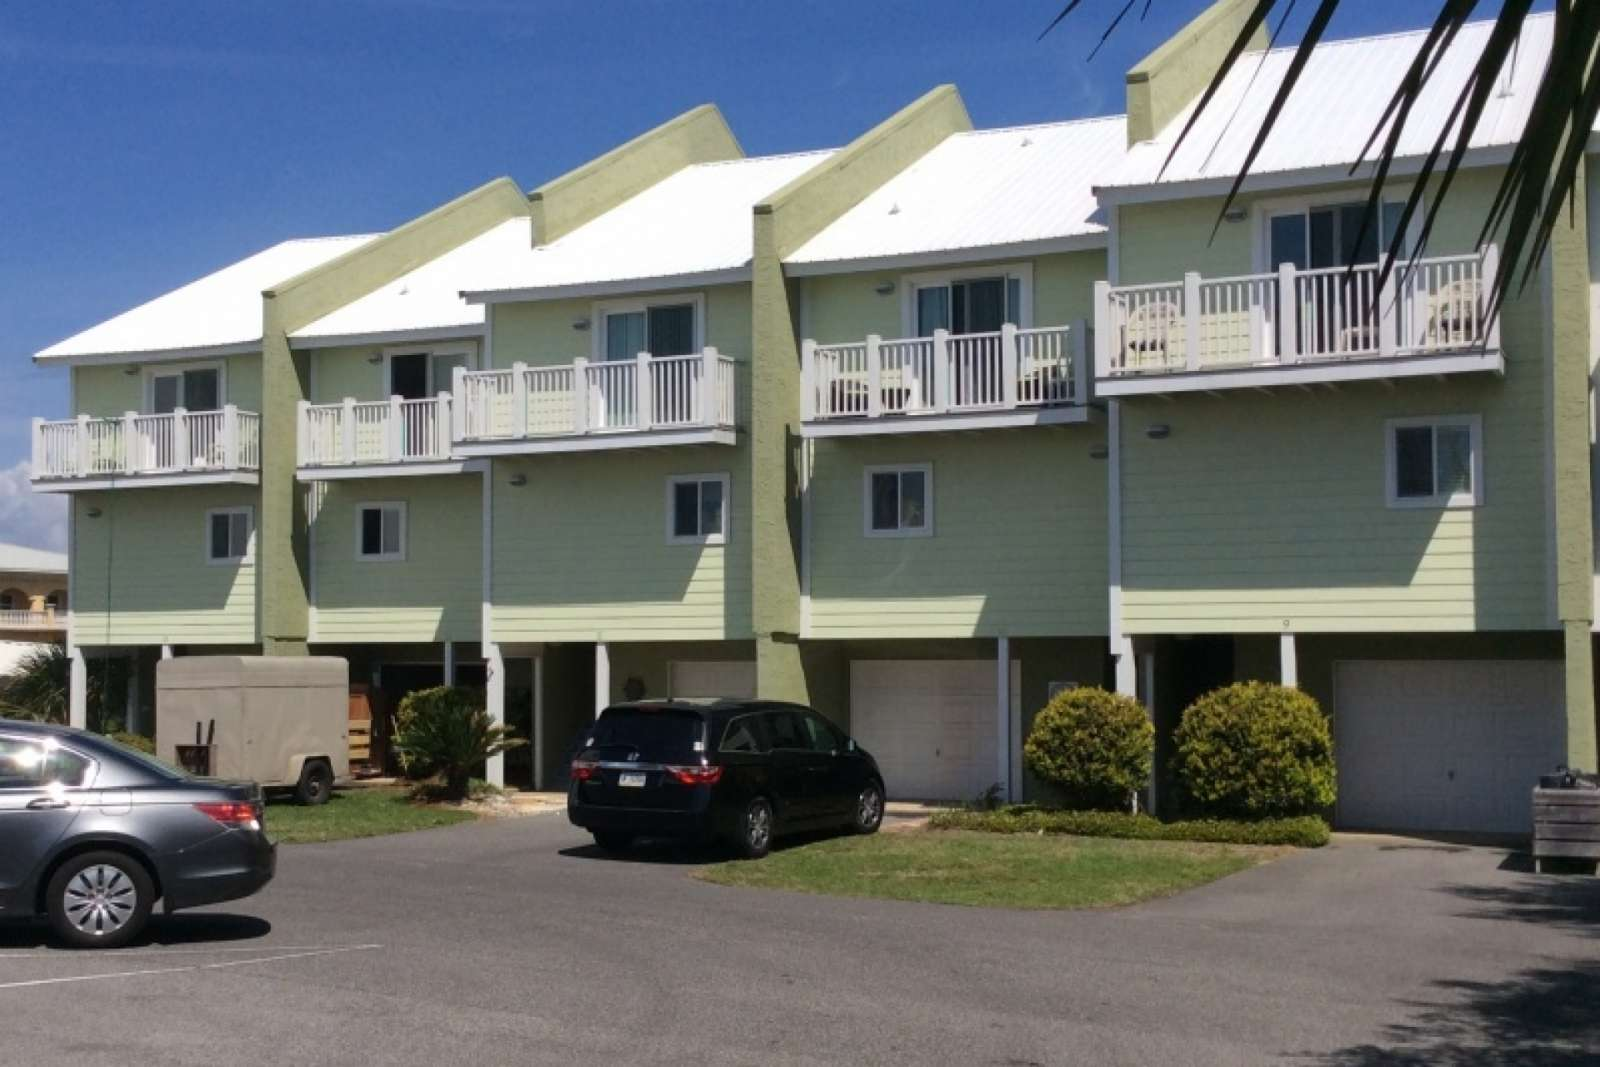 Santa Rosa Beach Vacation Al Seabluff 12 Relax 30a Style Steps To Sugar Beaches Wifi Community Pool Free Fun Townhome On Itrip